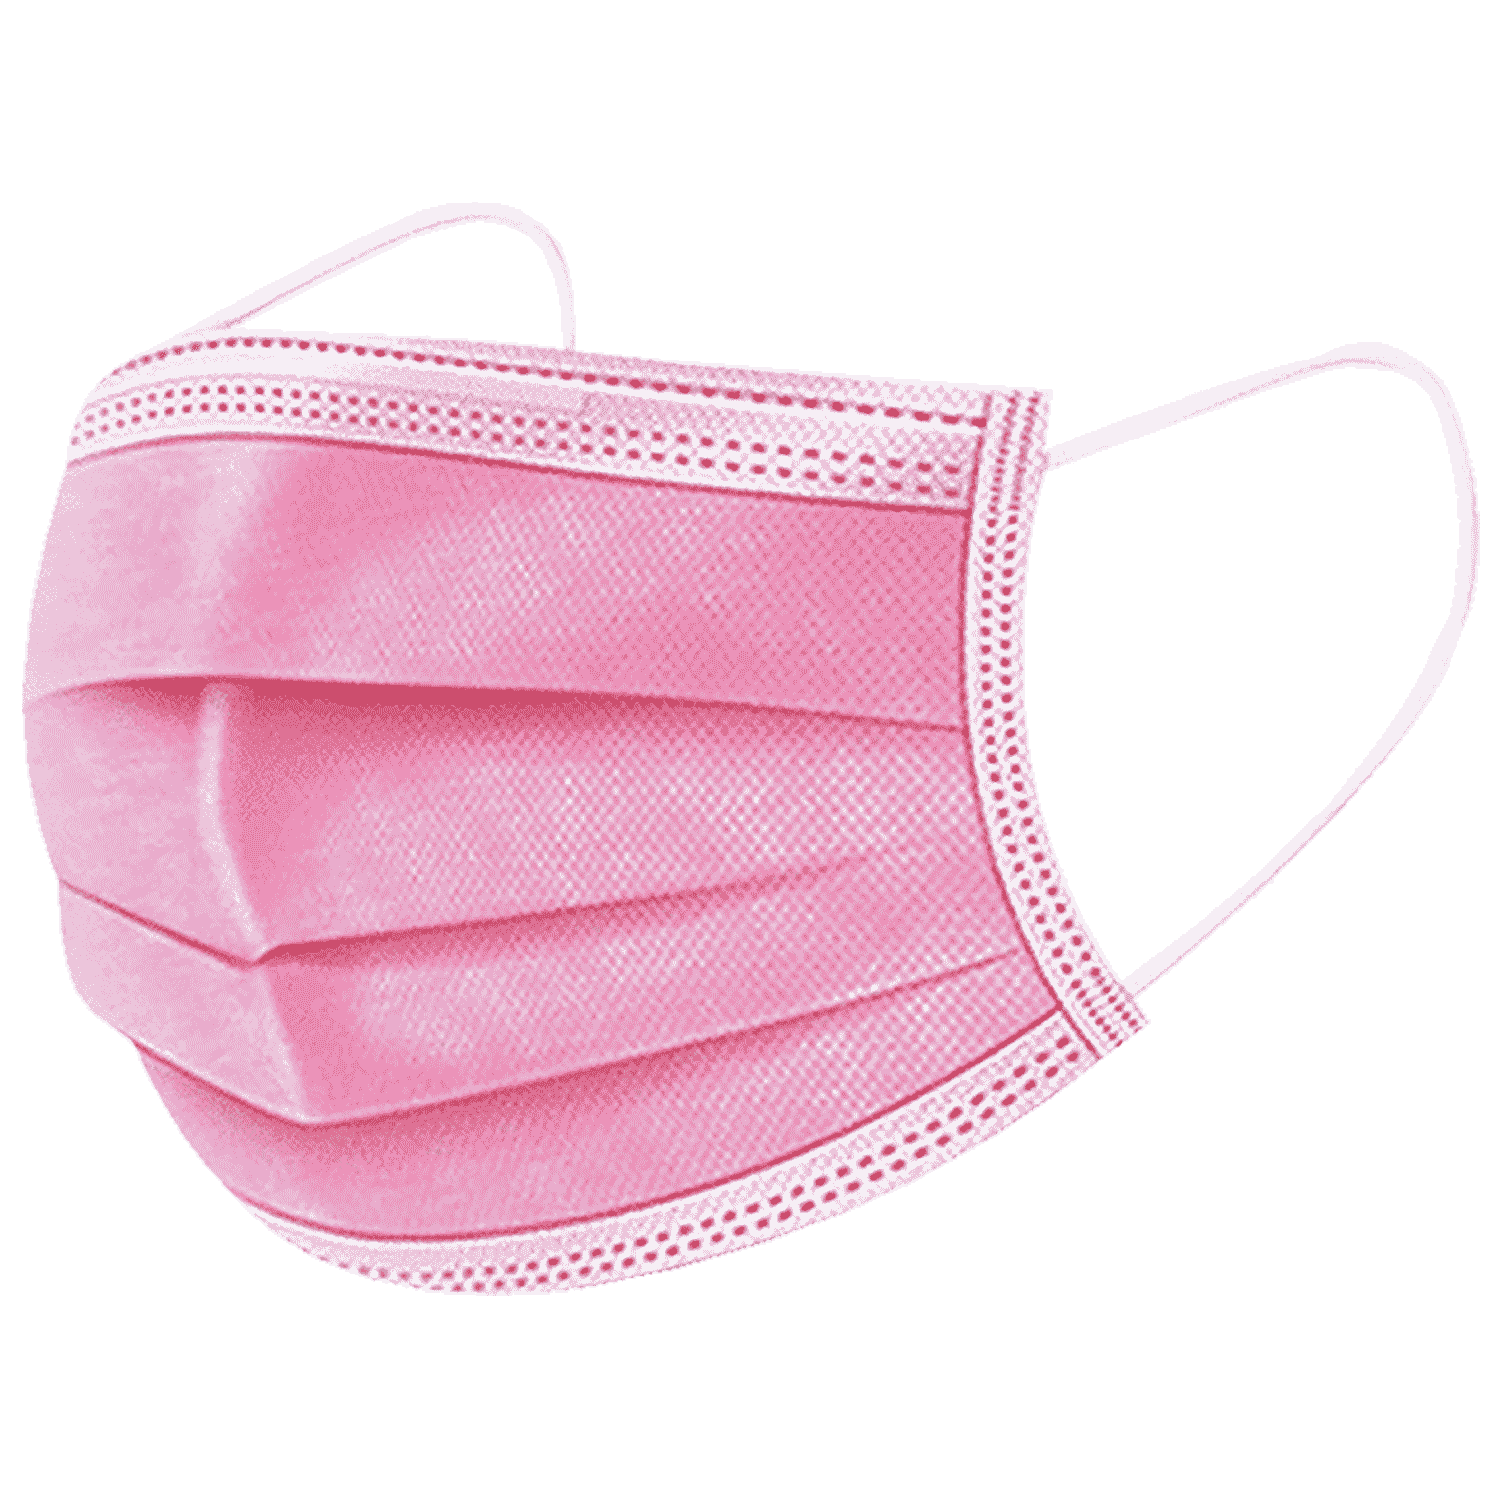 PINK Face Masks. for men and women Pack of 10 - Imported